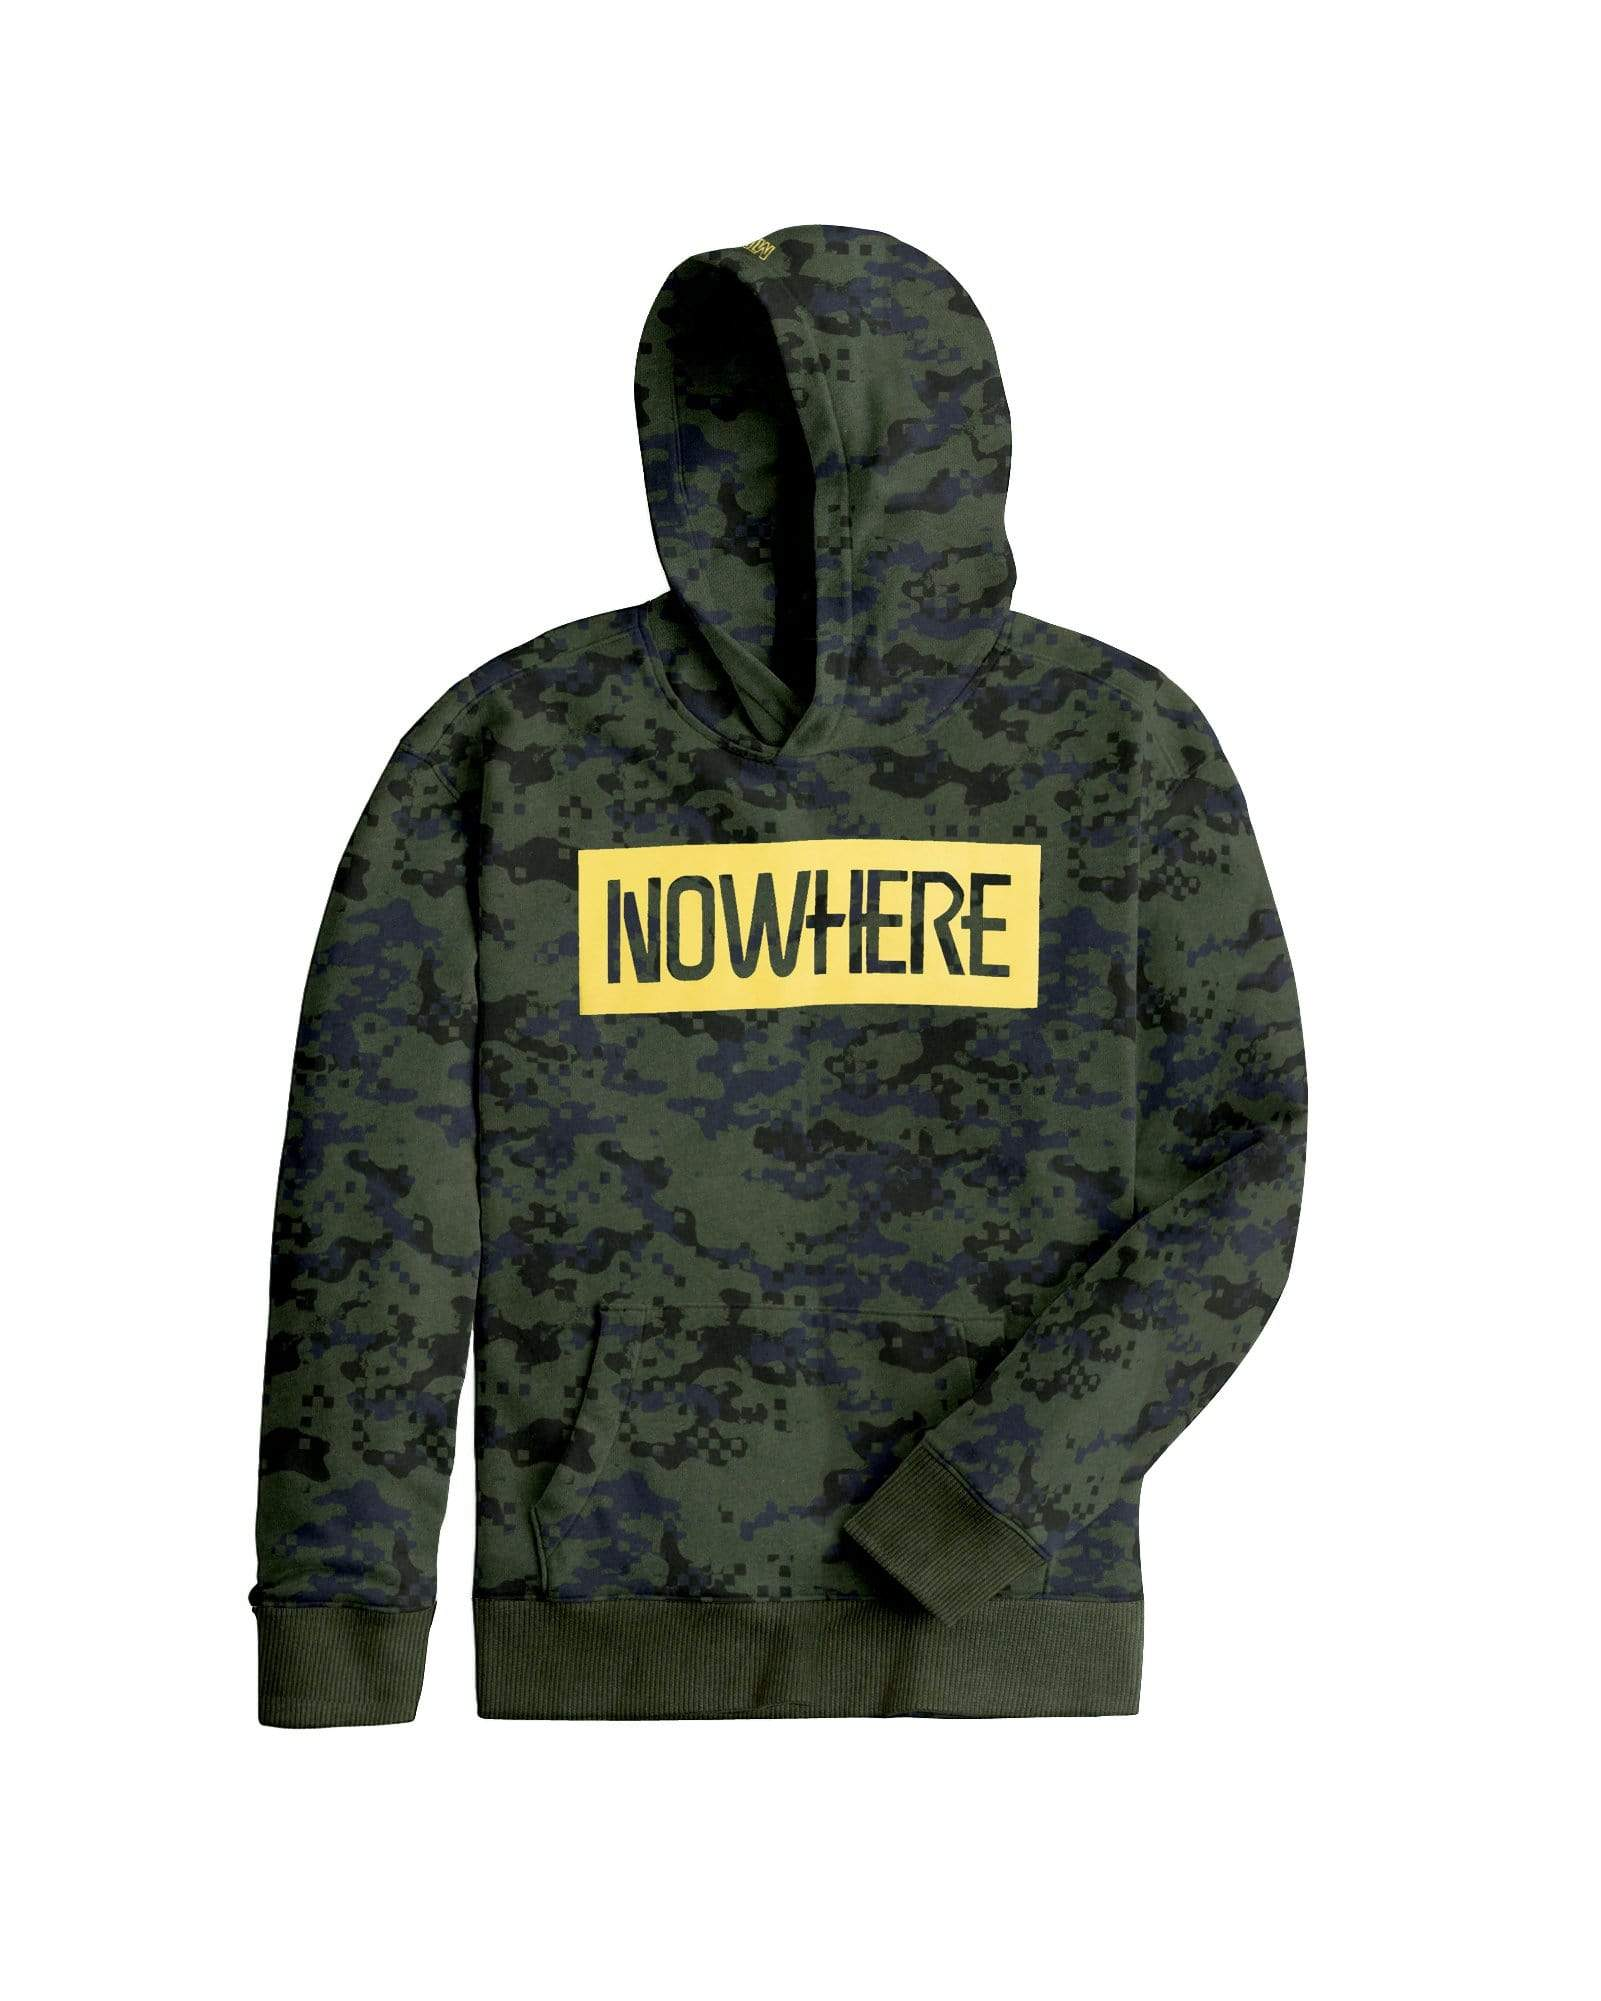 Stone Harbor Kid's Hoodie 9-10 Years / Green Boy's Henry James NOWHERE CAMO SWAG PULLOVER Hoodie